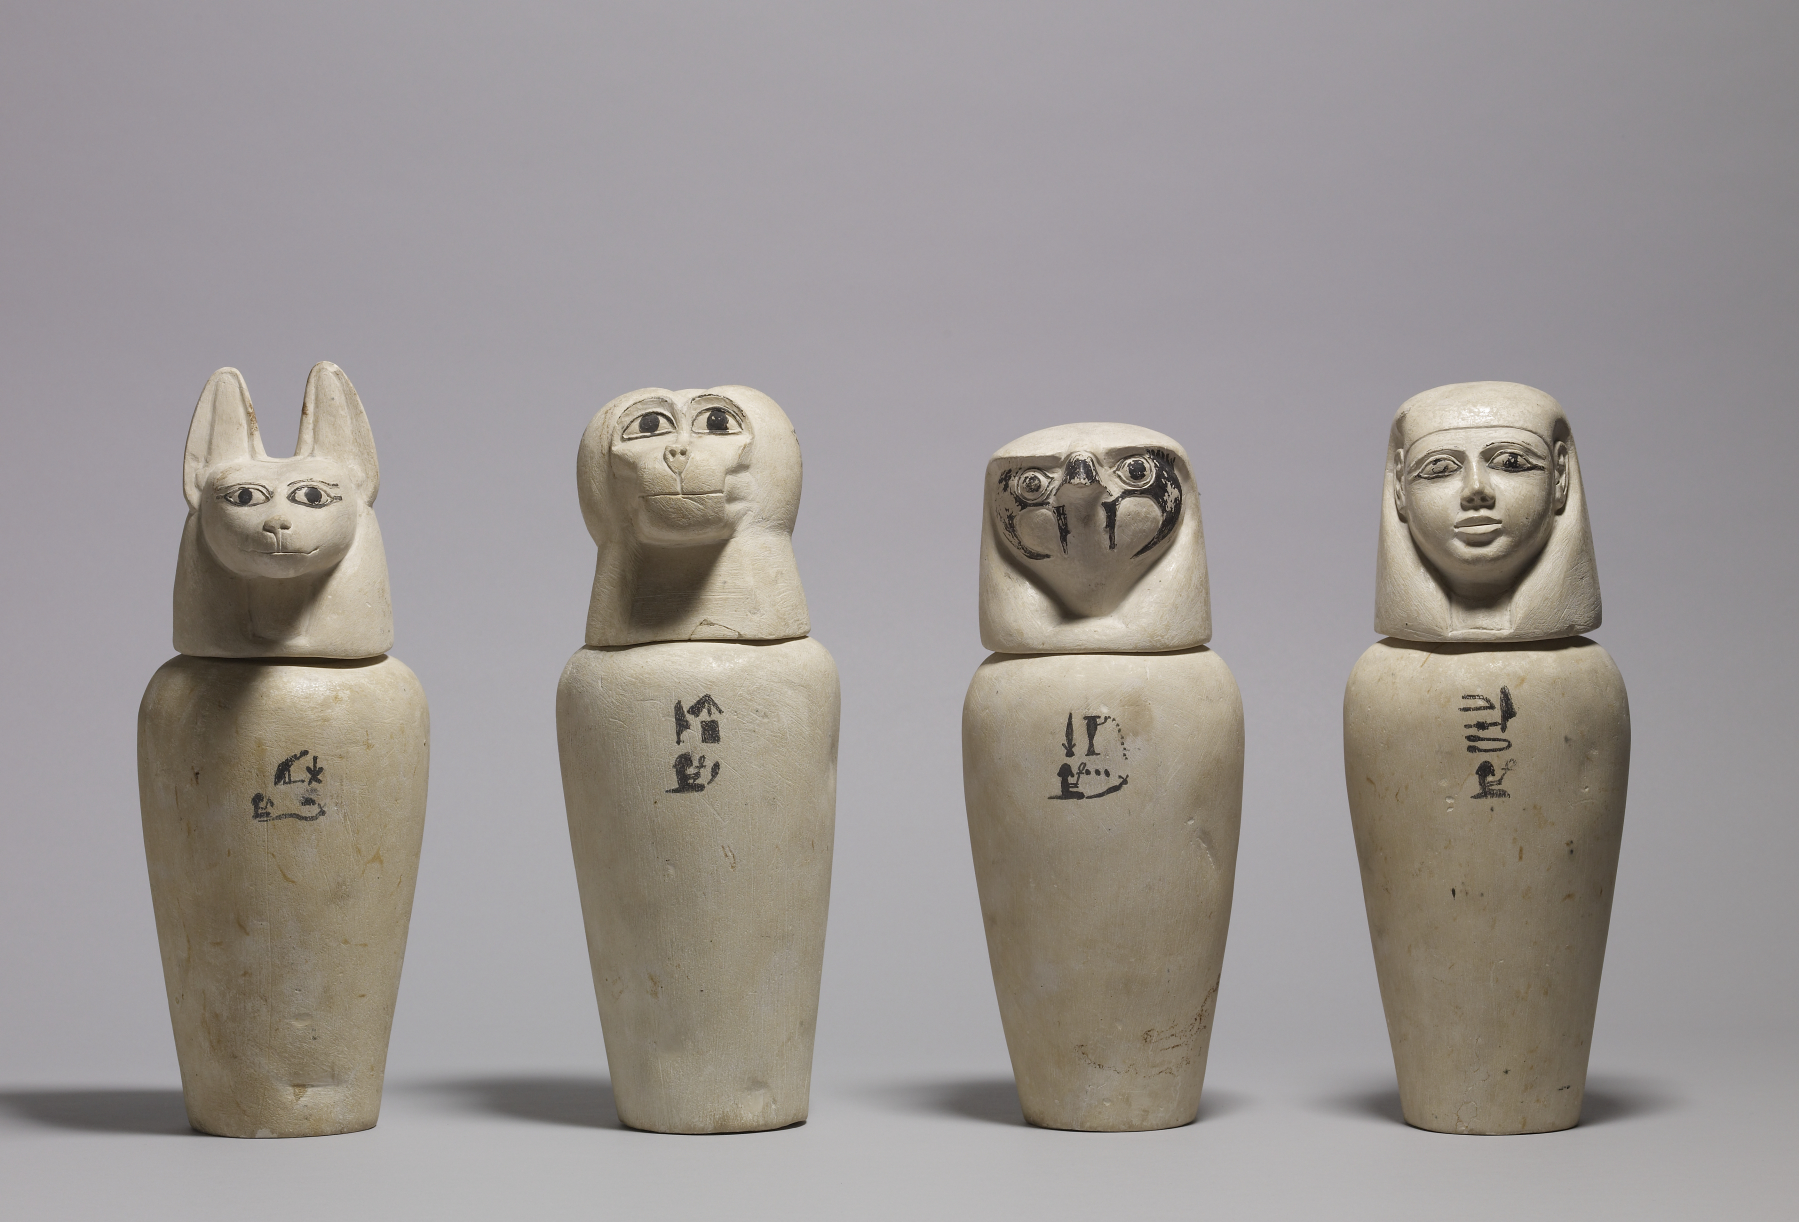 Canopic Jars, 900 BCE — Ancient Egypt